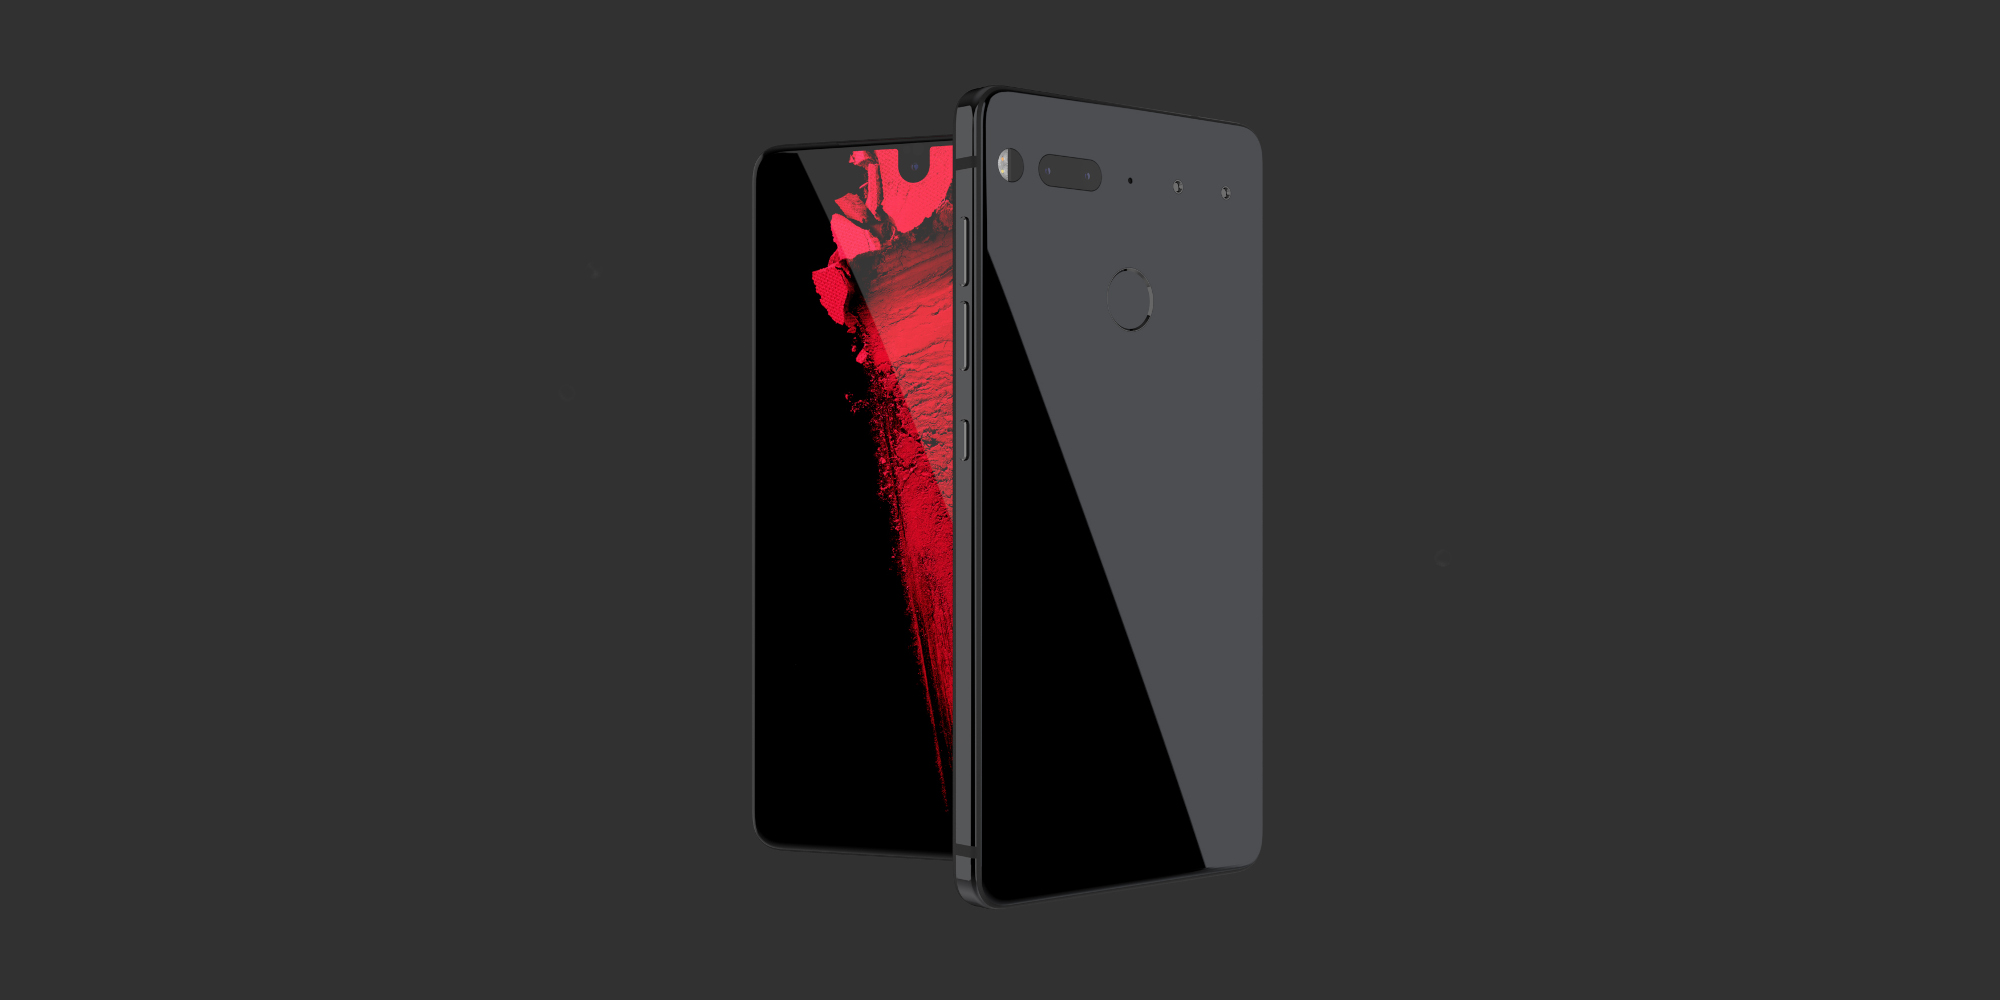 Essential Phone model PH-1